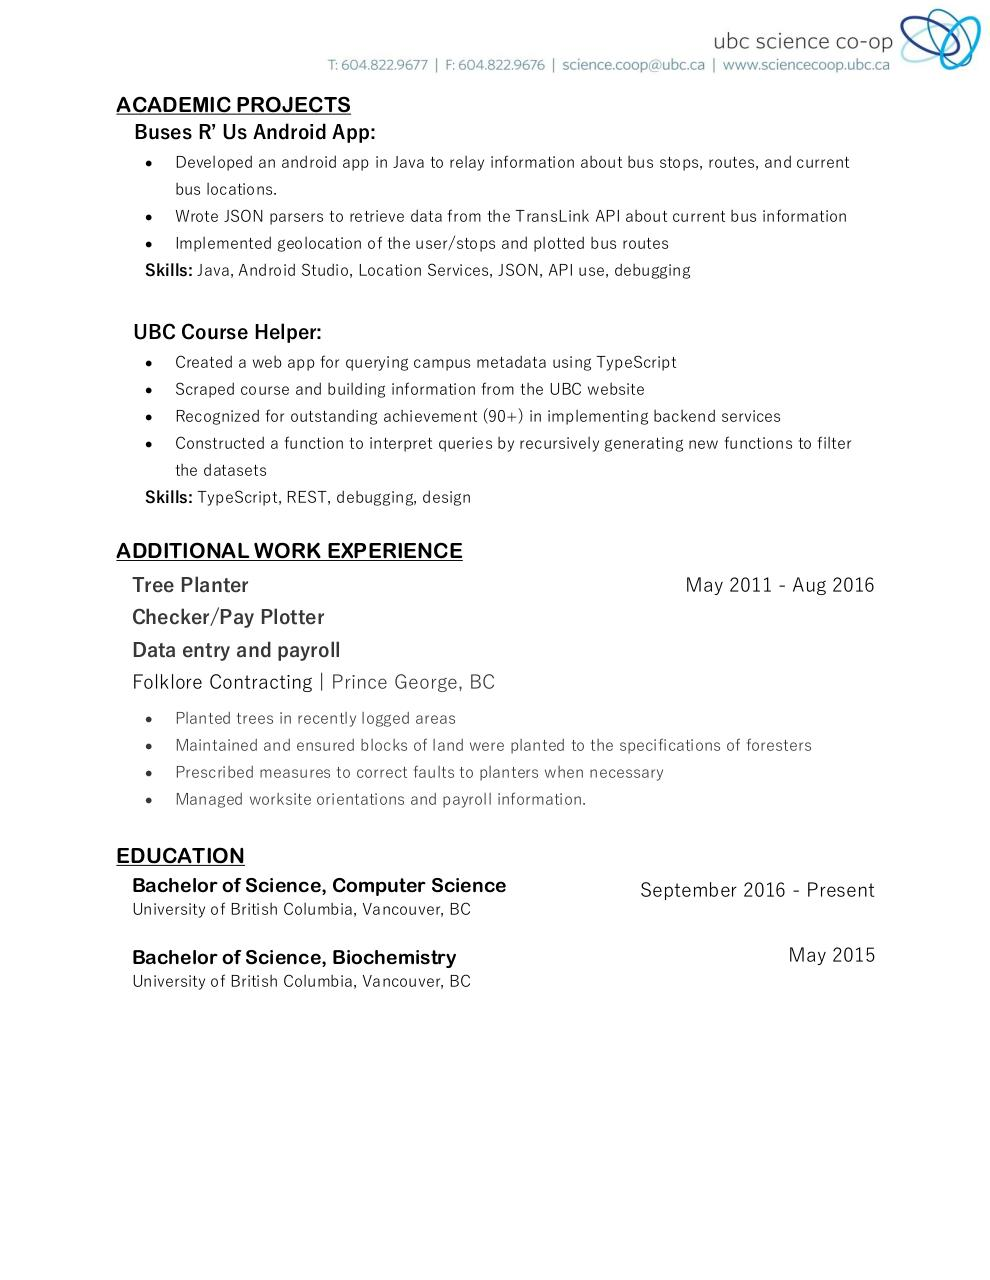 resume foresters controller resumes coach resumes daily resume preview sammcconnell resume 2 resume forestershtml epic consultant objective - Epic Consultant